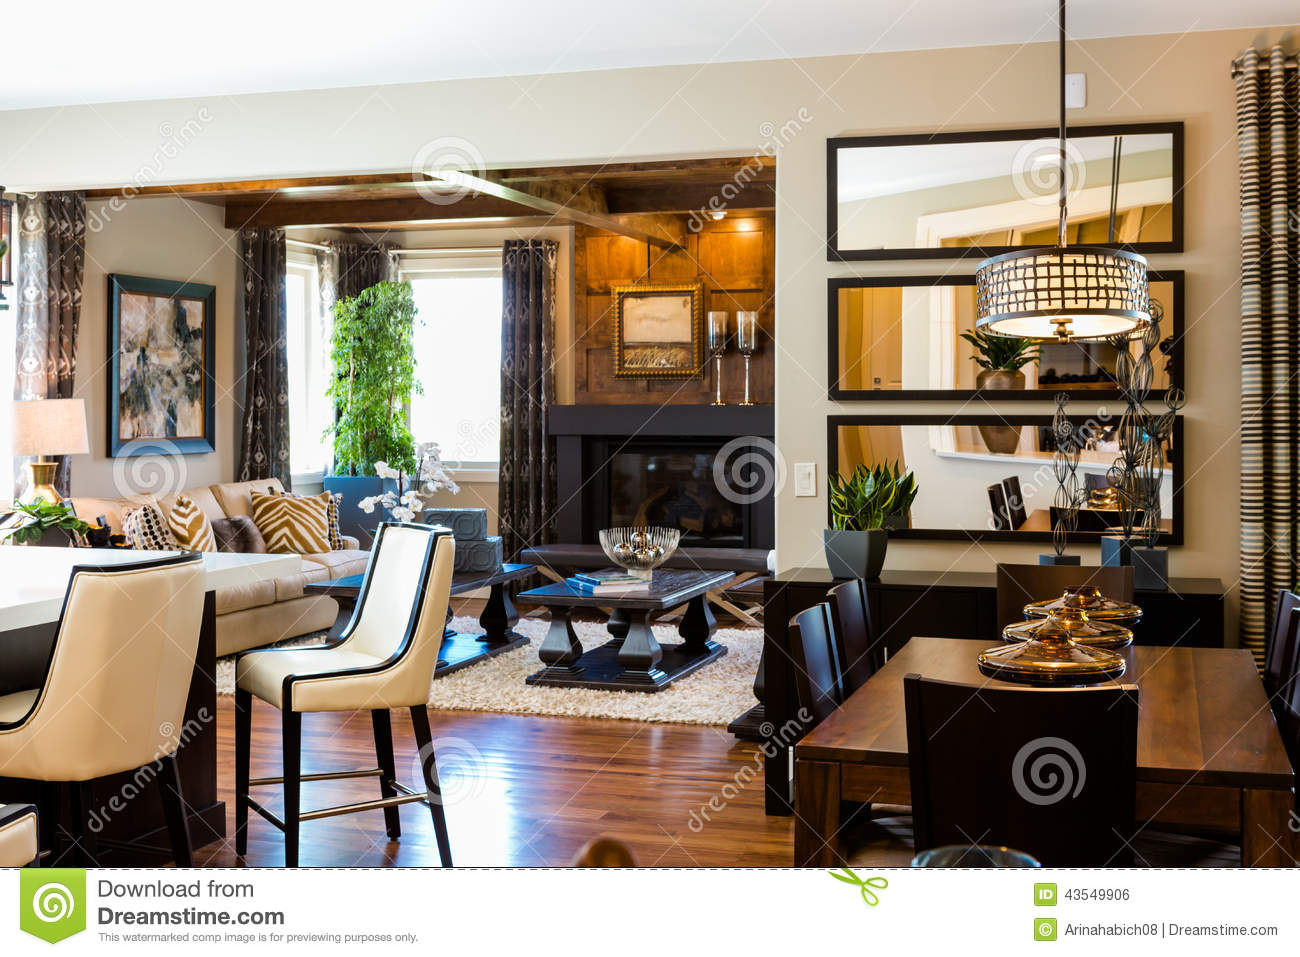 Interiors Editorial Photo Image 43549906 : interiors denver colorado usa august luxury interior typical american suburban house 43549906 from dreamstime.com size 1300 x 957 jpeg 196kB